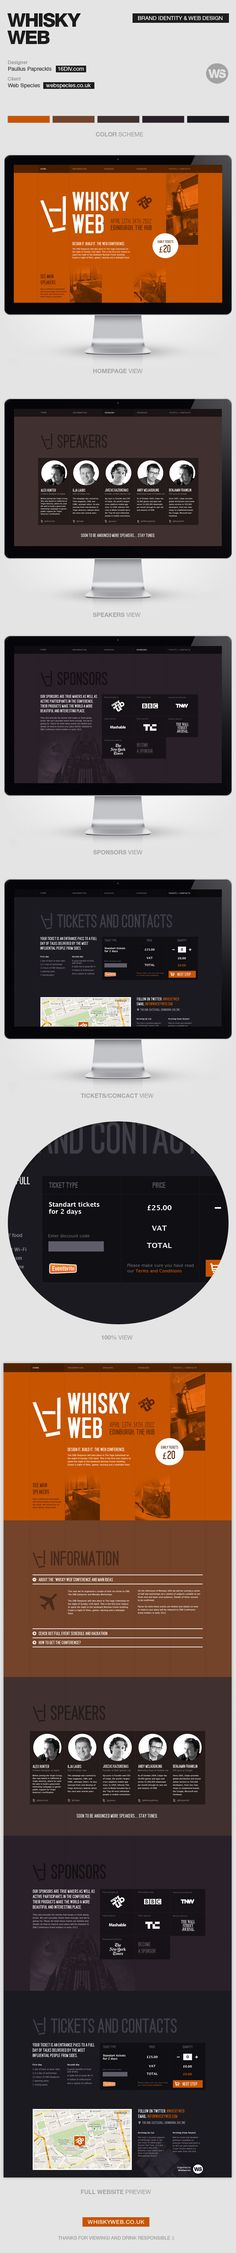 whiskey web | #webdesign #it #web #design #layout #userinterface #website #webdesign < repinned by www.BlickeDeeler.de